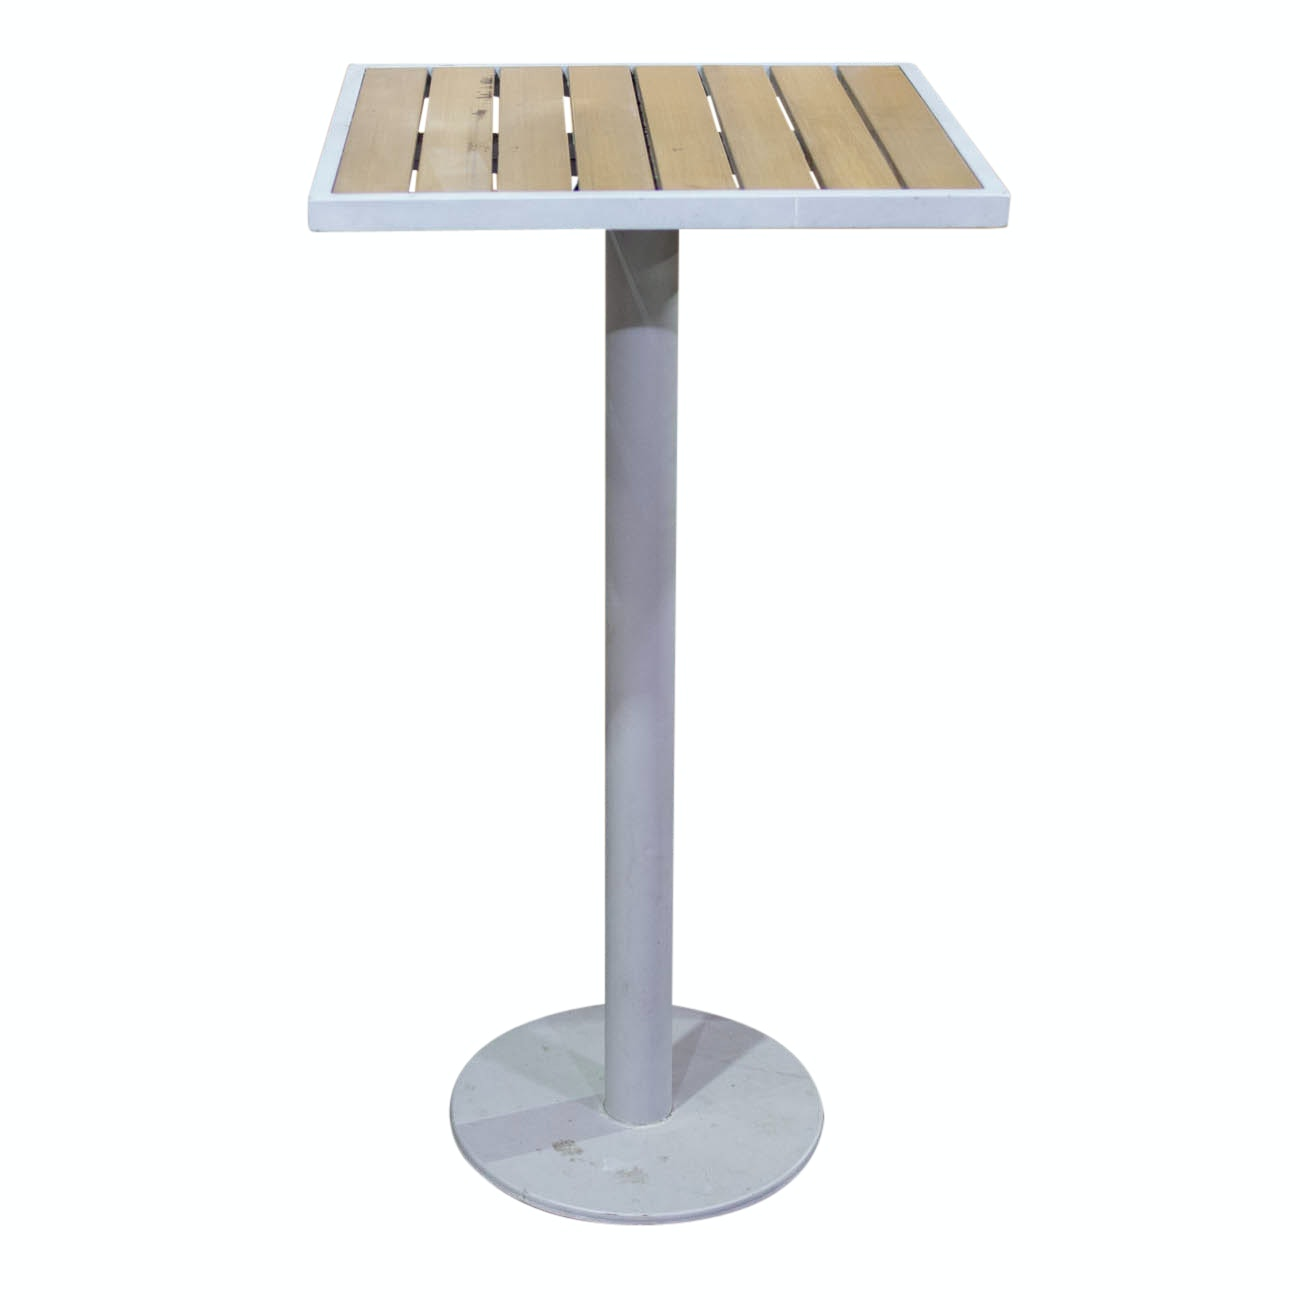 Merveilleux Tall Metal Table With Wood Top From Great American Ball Park COA ...